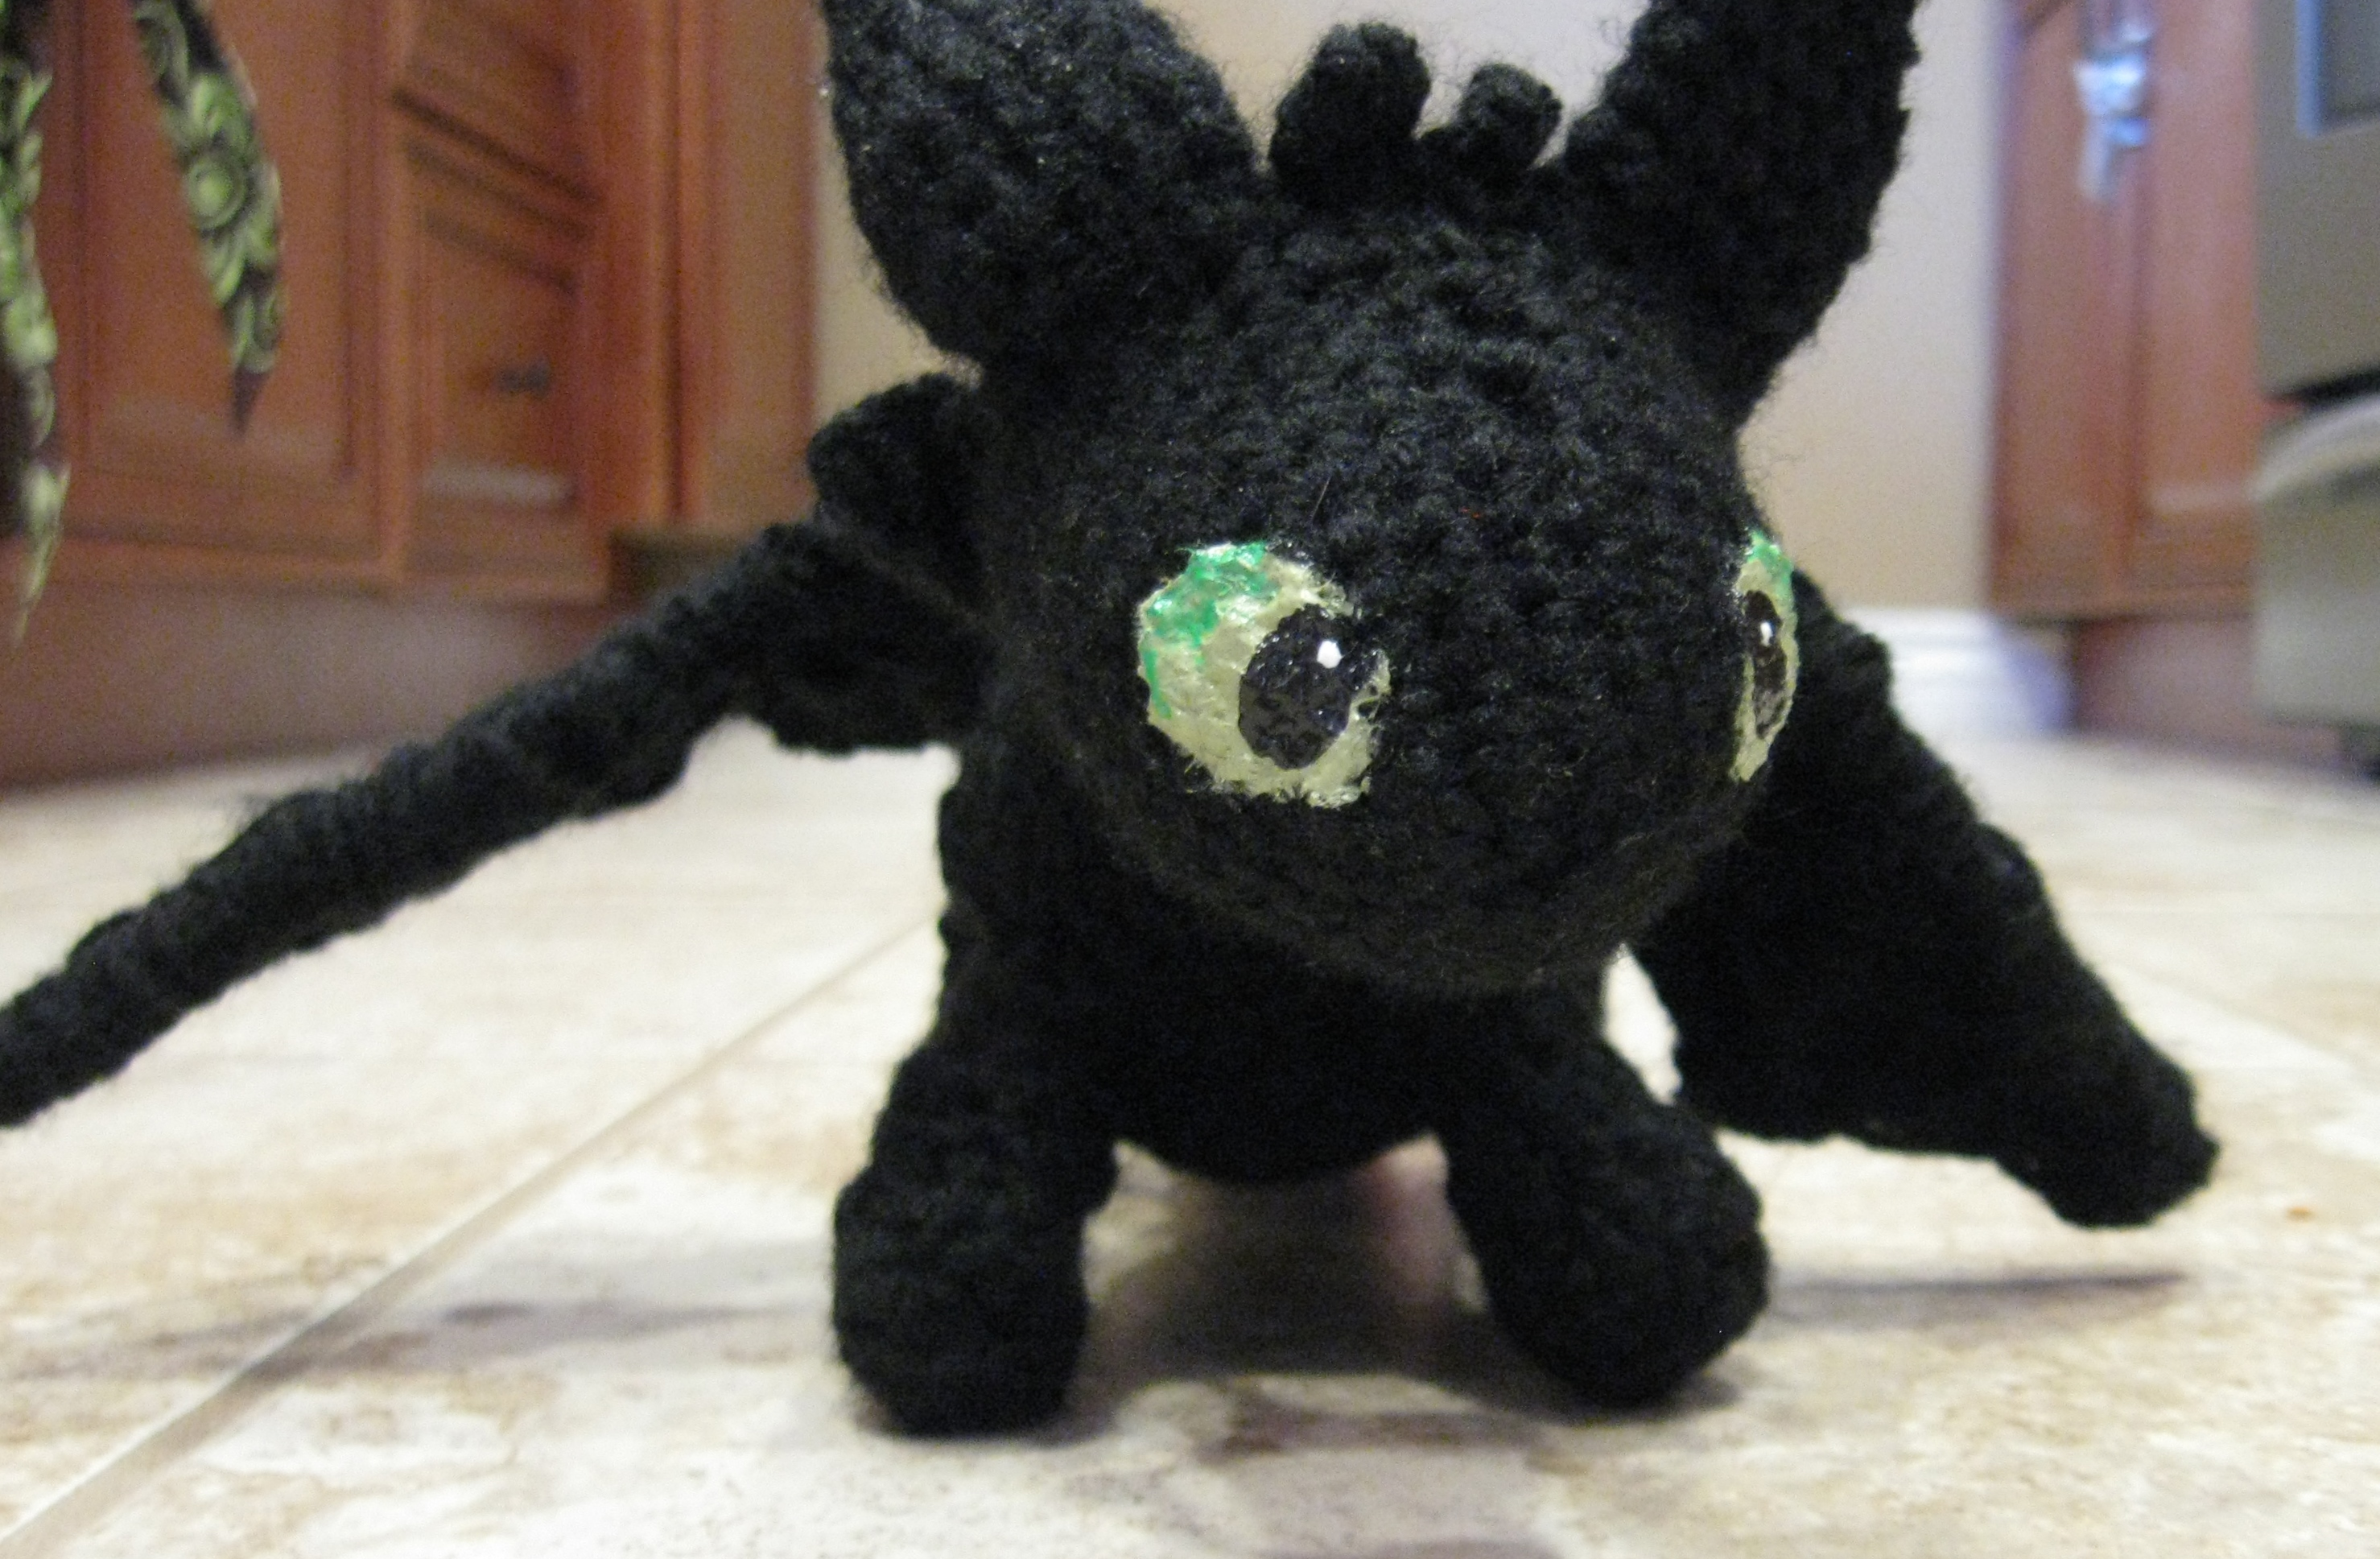 Toothless Dragon Amigurumi Pattern : Crochet toothless plush · lk sarts · online store powered by storenvy